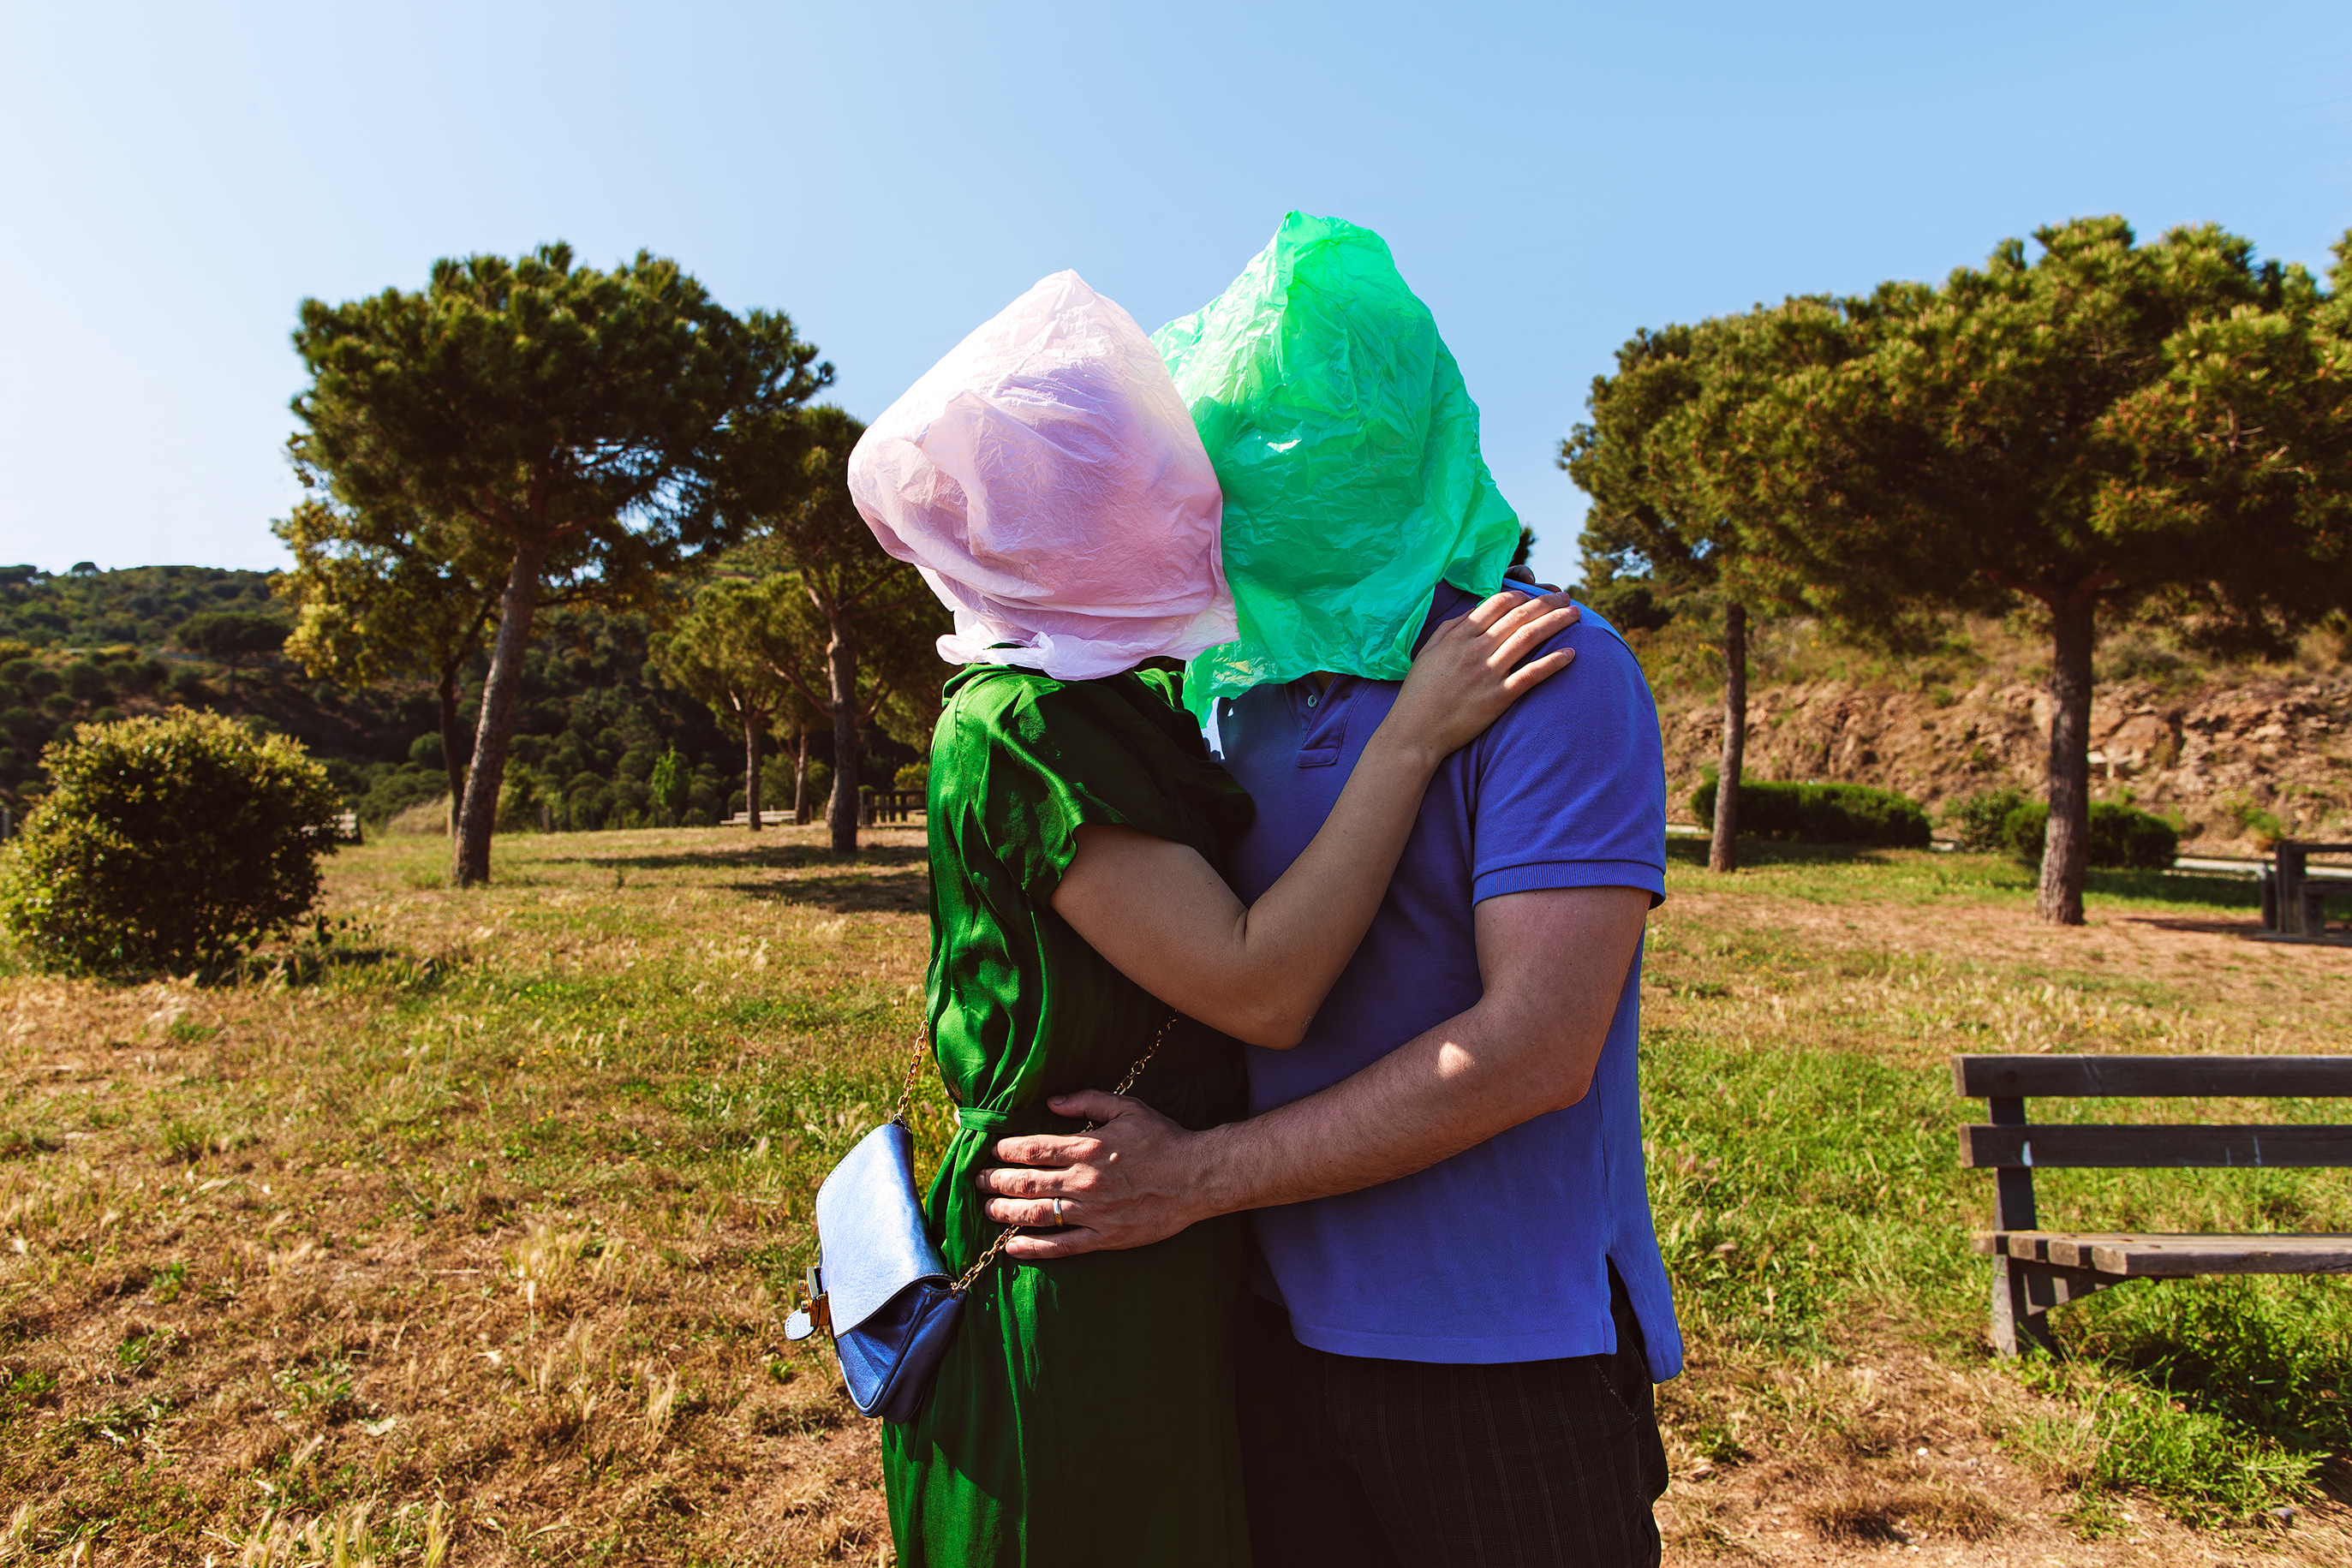 photo of a woman and man embracing and kissing in a field with colorful trash bags over their heads